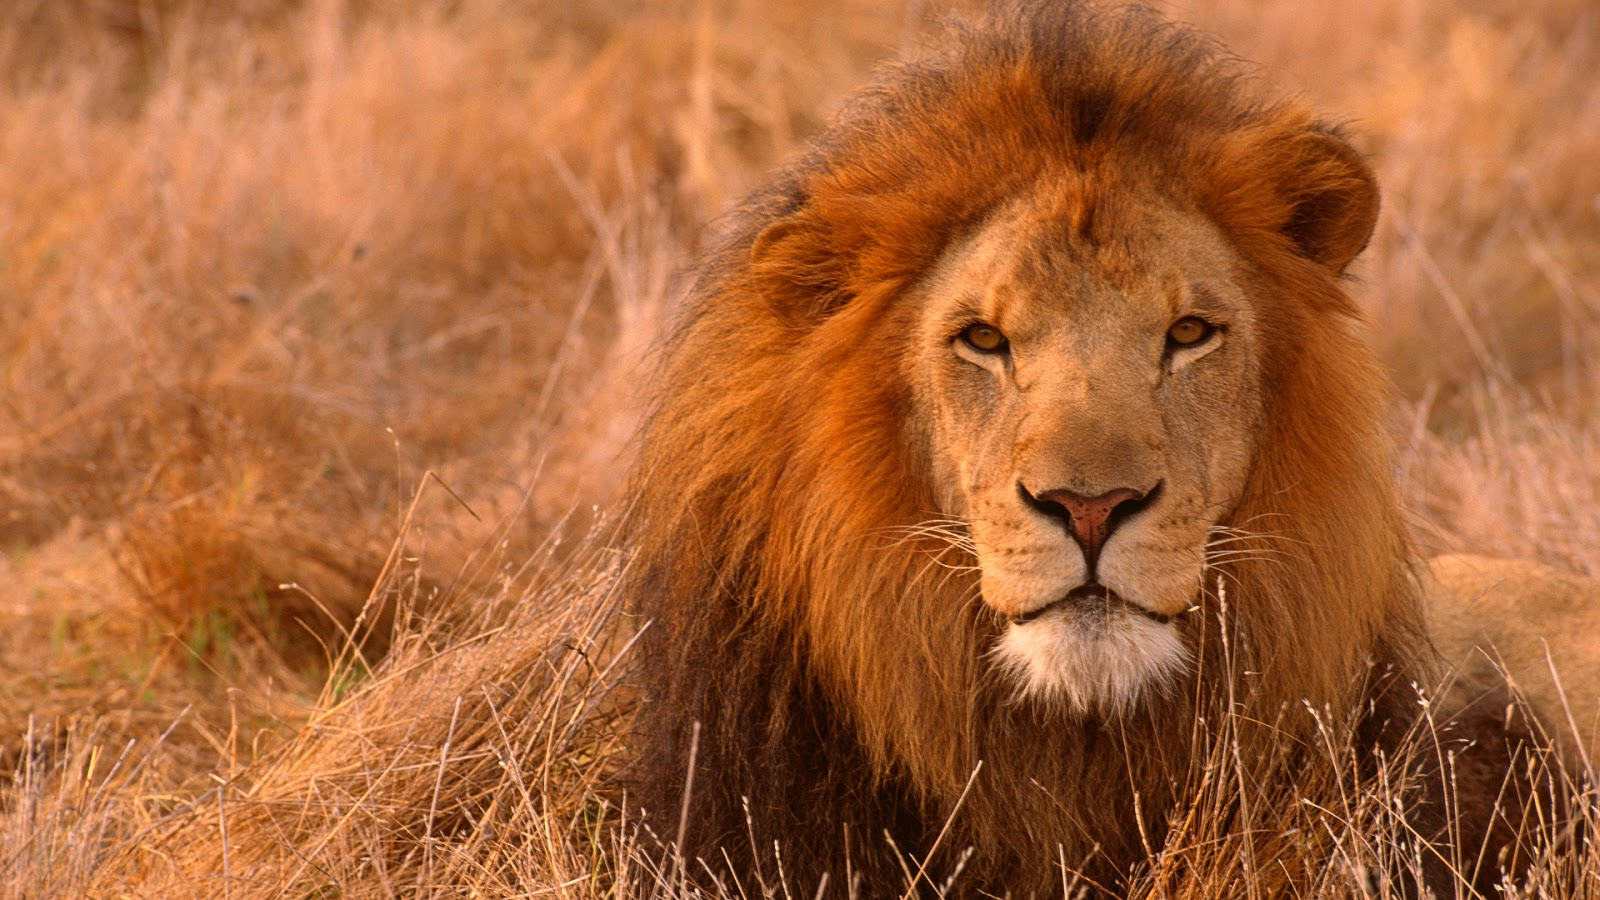 Lion HD Wallpapers Free Pictures Download Photos - HD ...